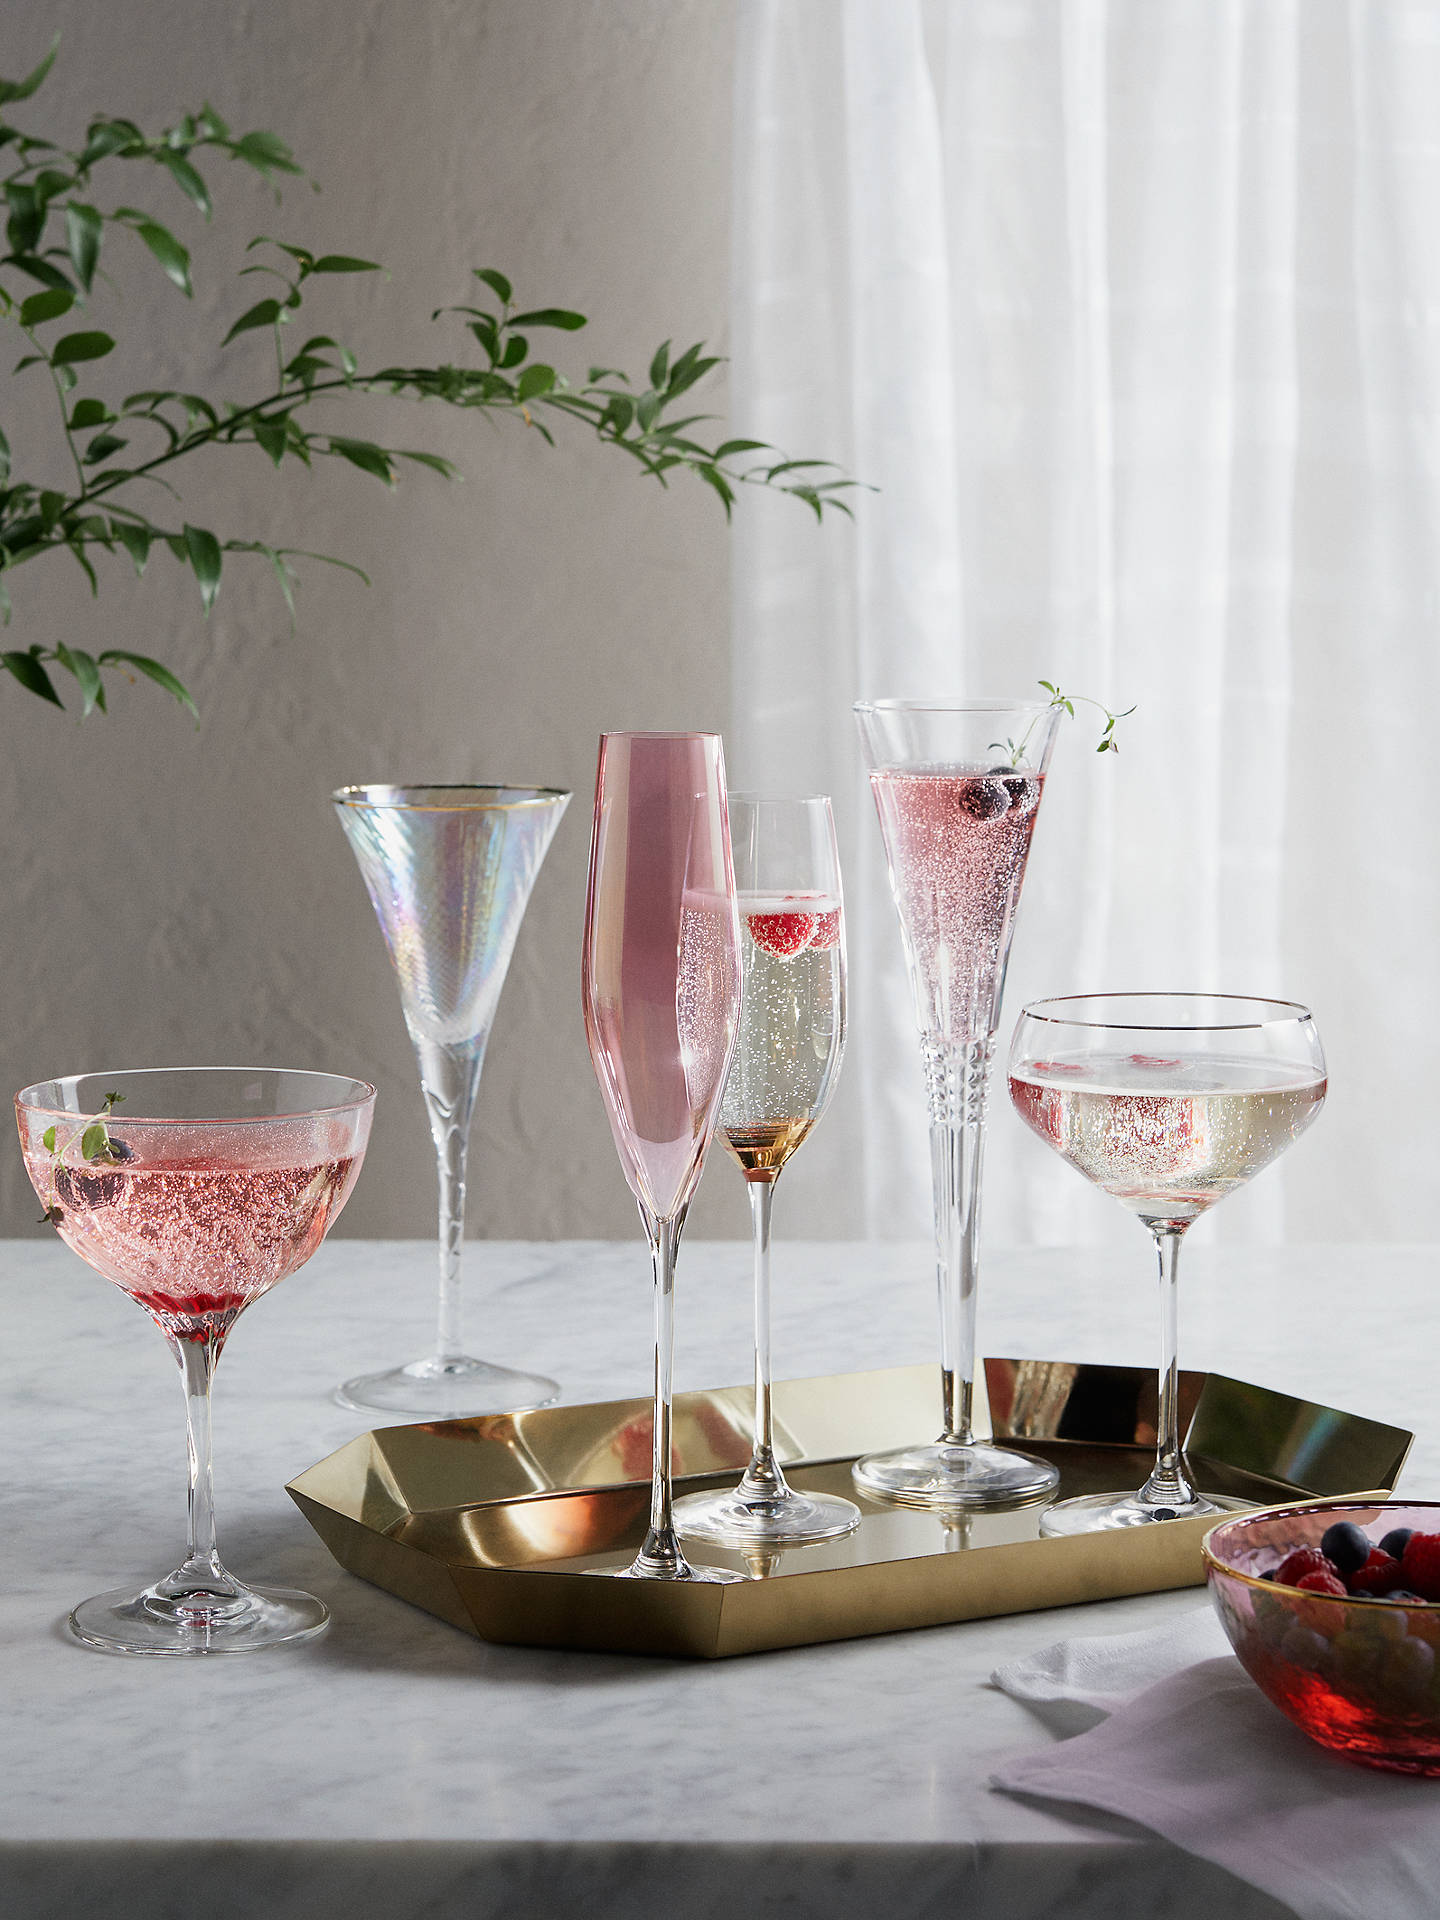 Buy John Lewis & Partners Swirl Stem Champagne Flute, 240ml, Clear/Gold Online at johnlewis.com